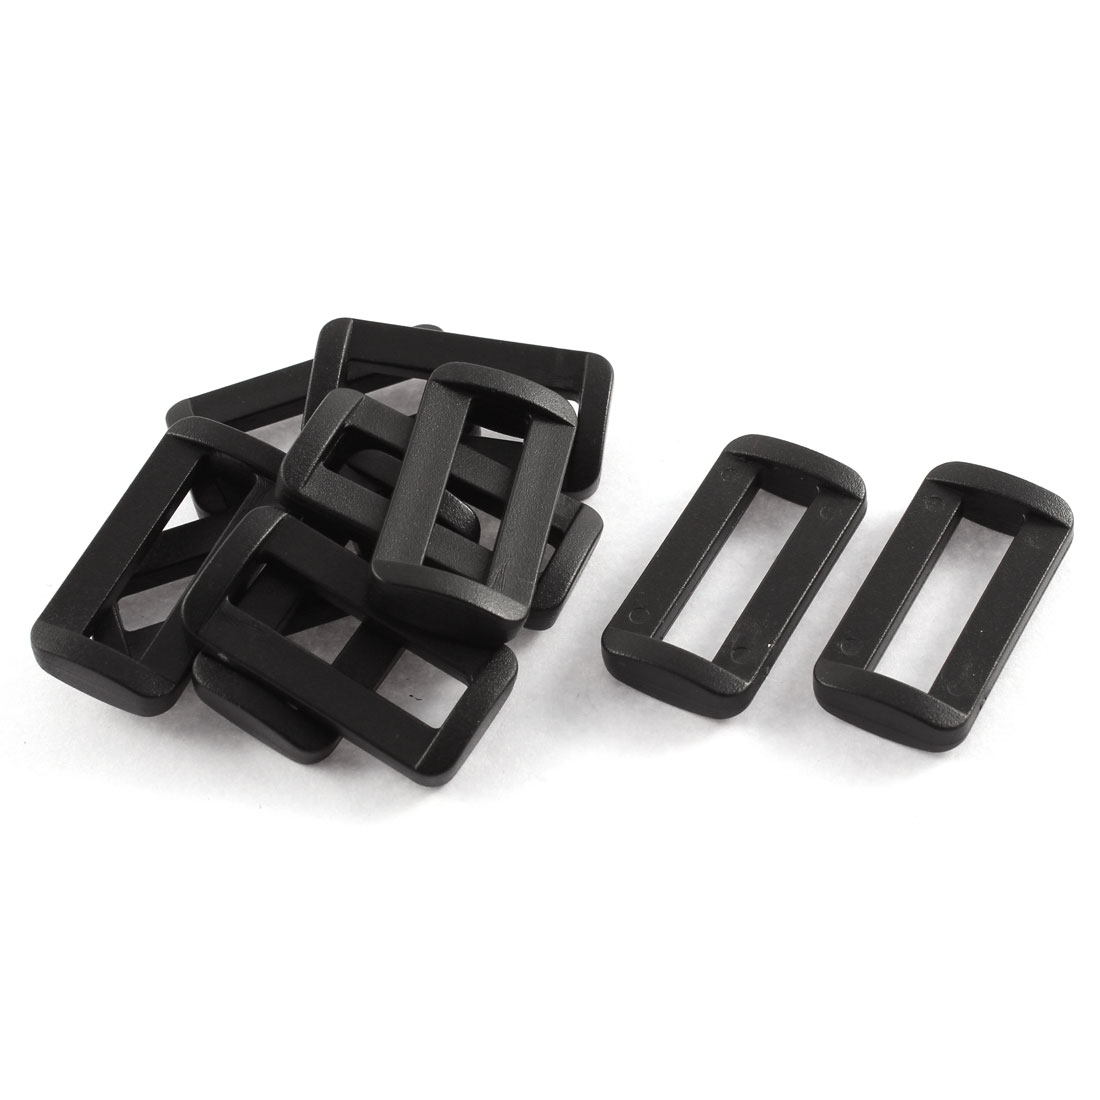 "10pcs Black Plastic Bar Slides Buckles for 1"" Webbing Strap"